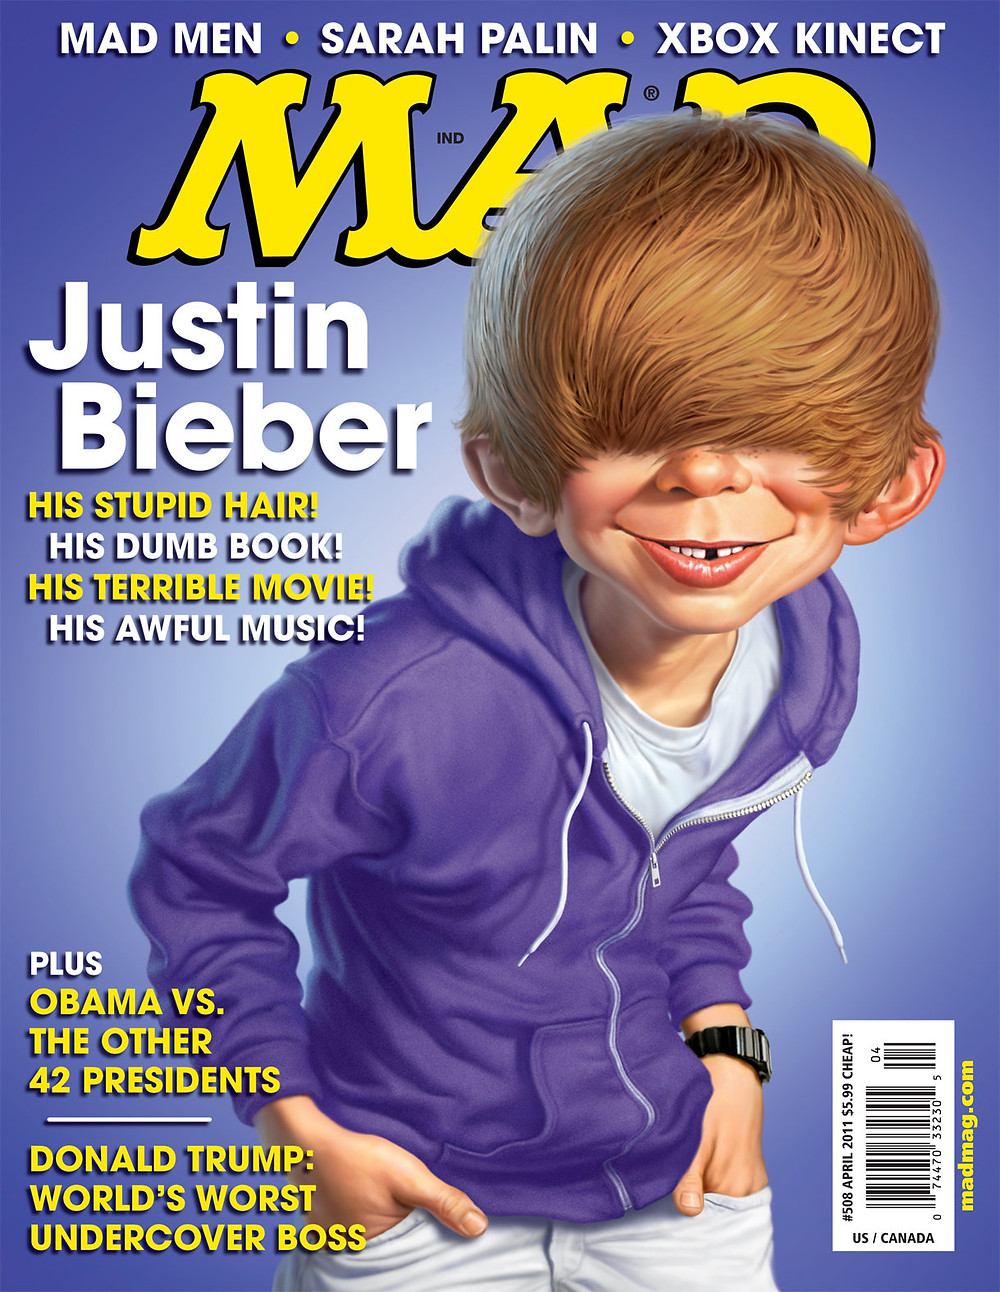 Justin Bieber shaggy hair caricature on cover of mad magazine